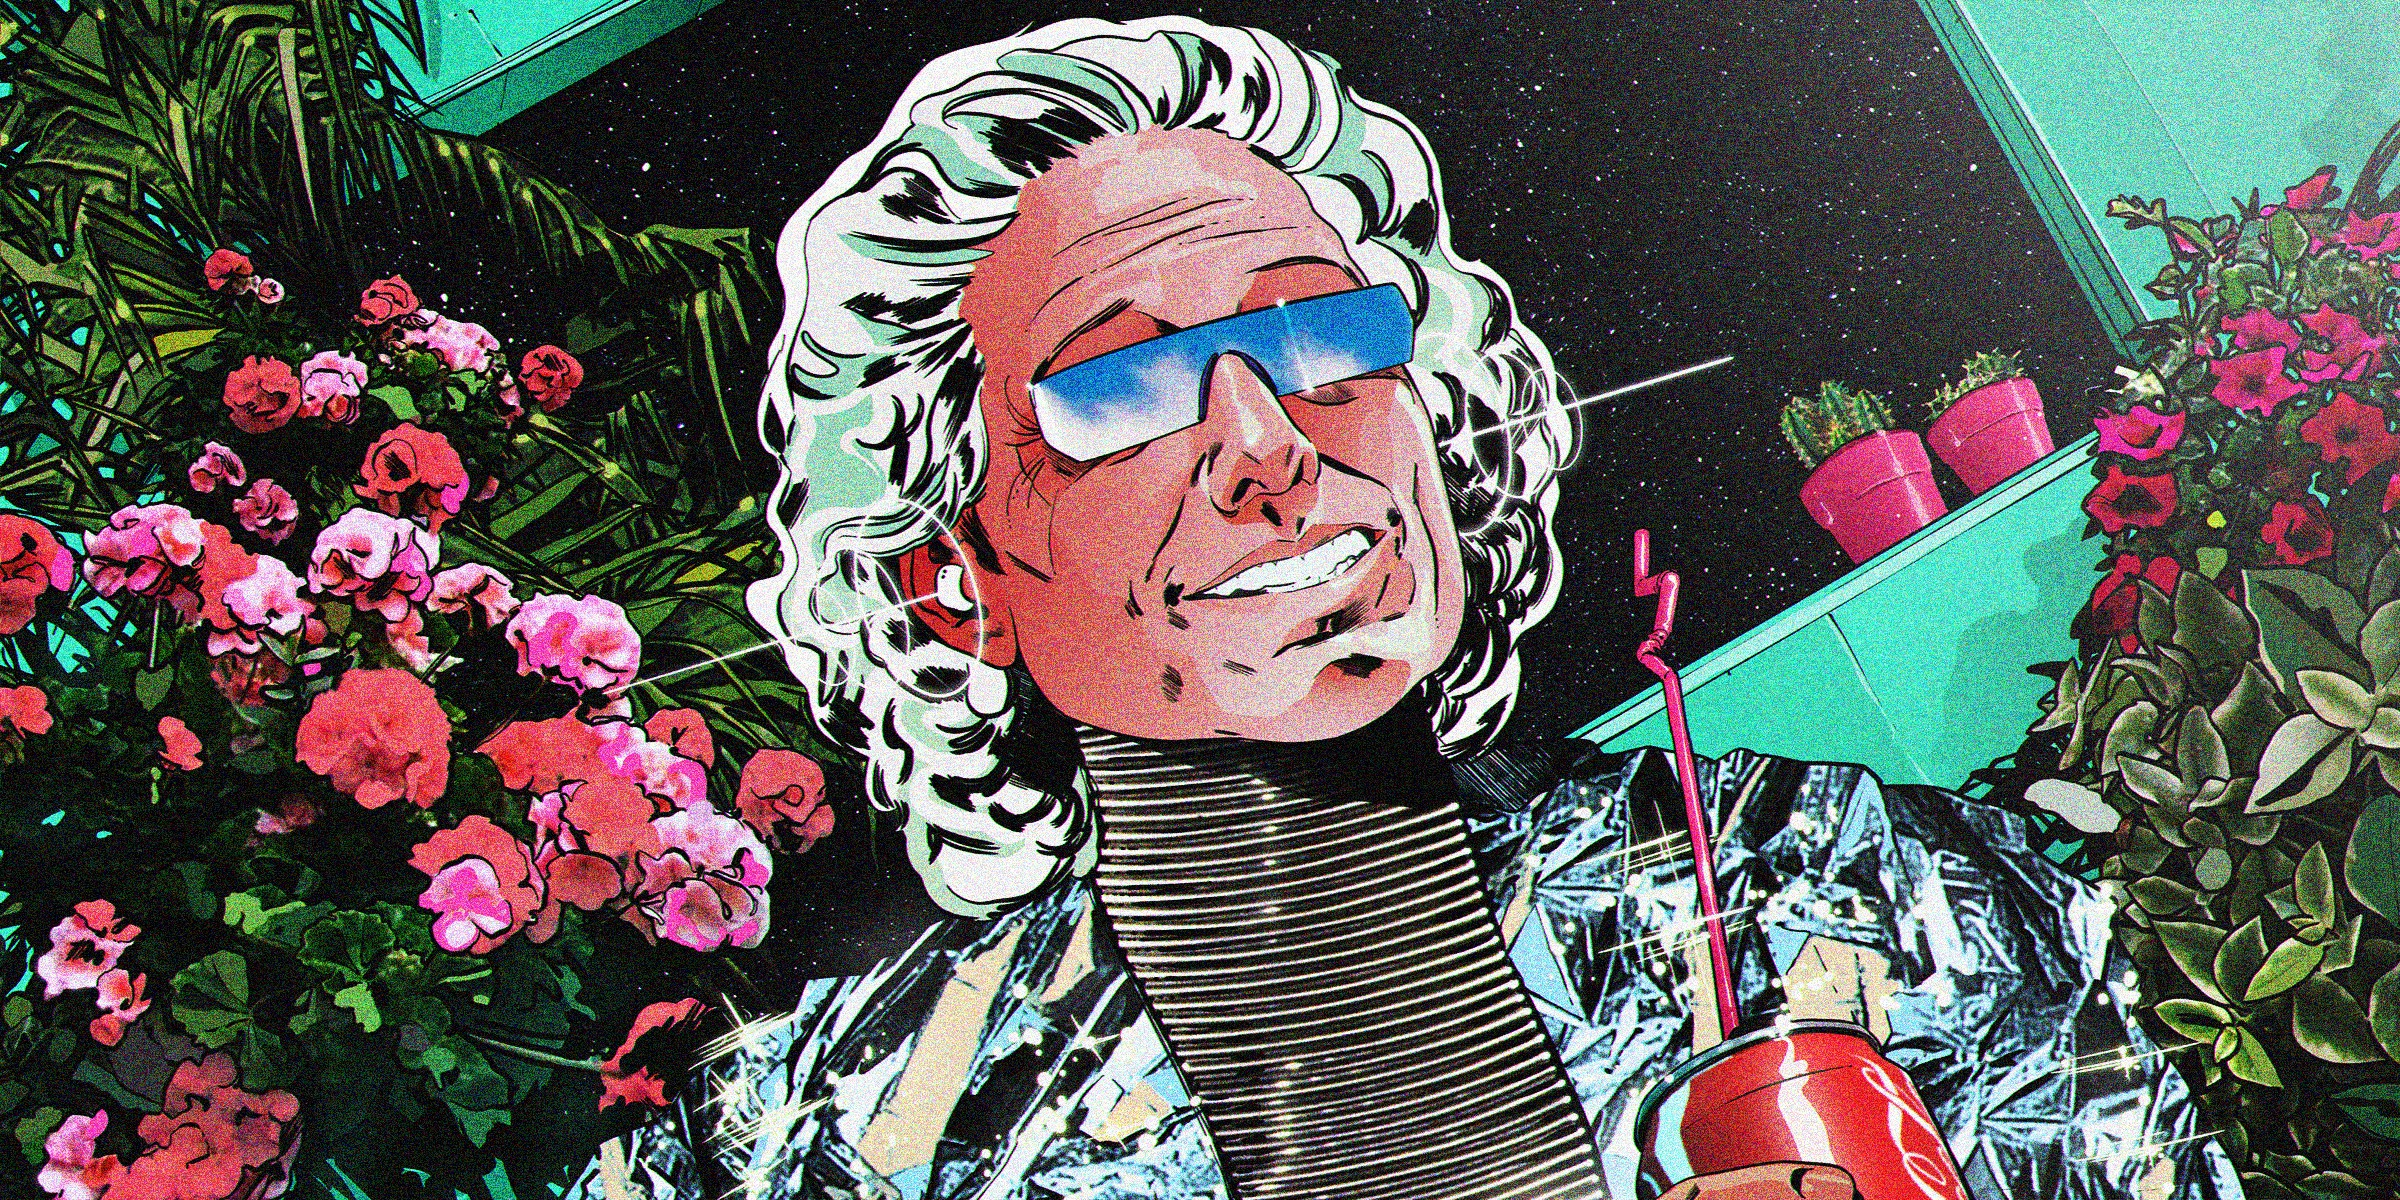 Steven Pinker on the Past, Present, and Future of Optimism